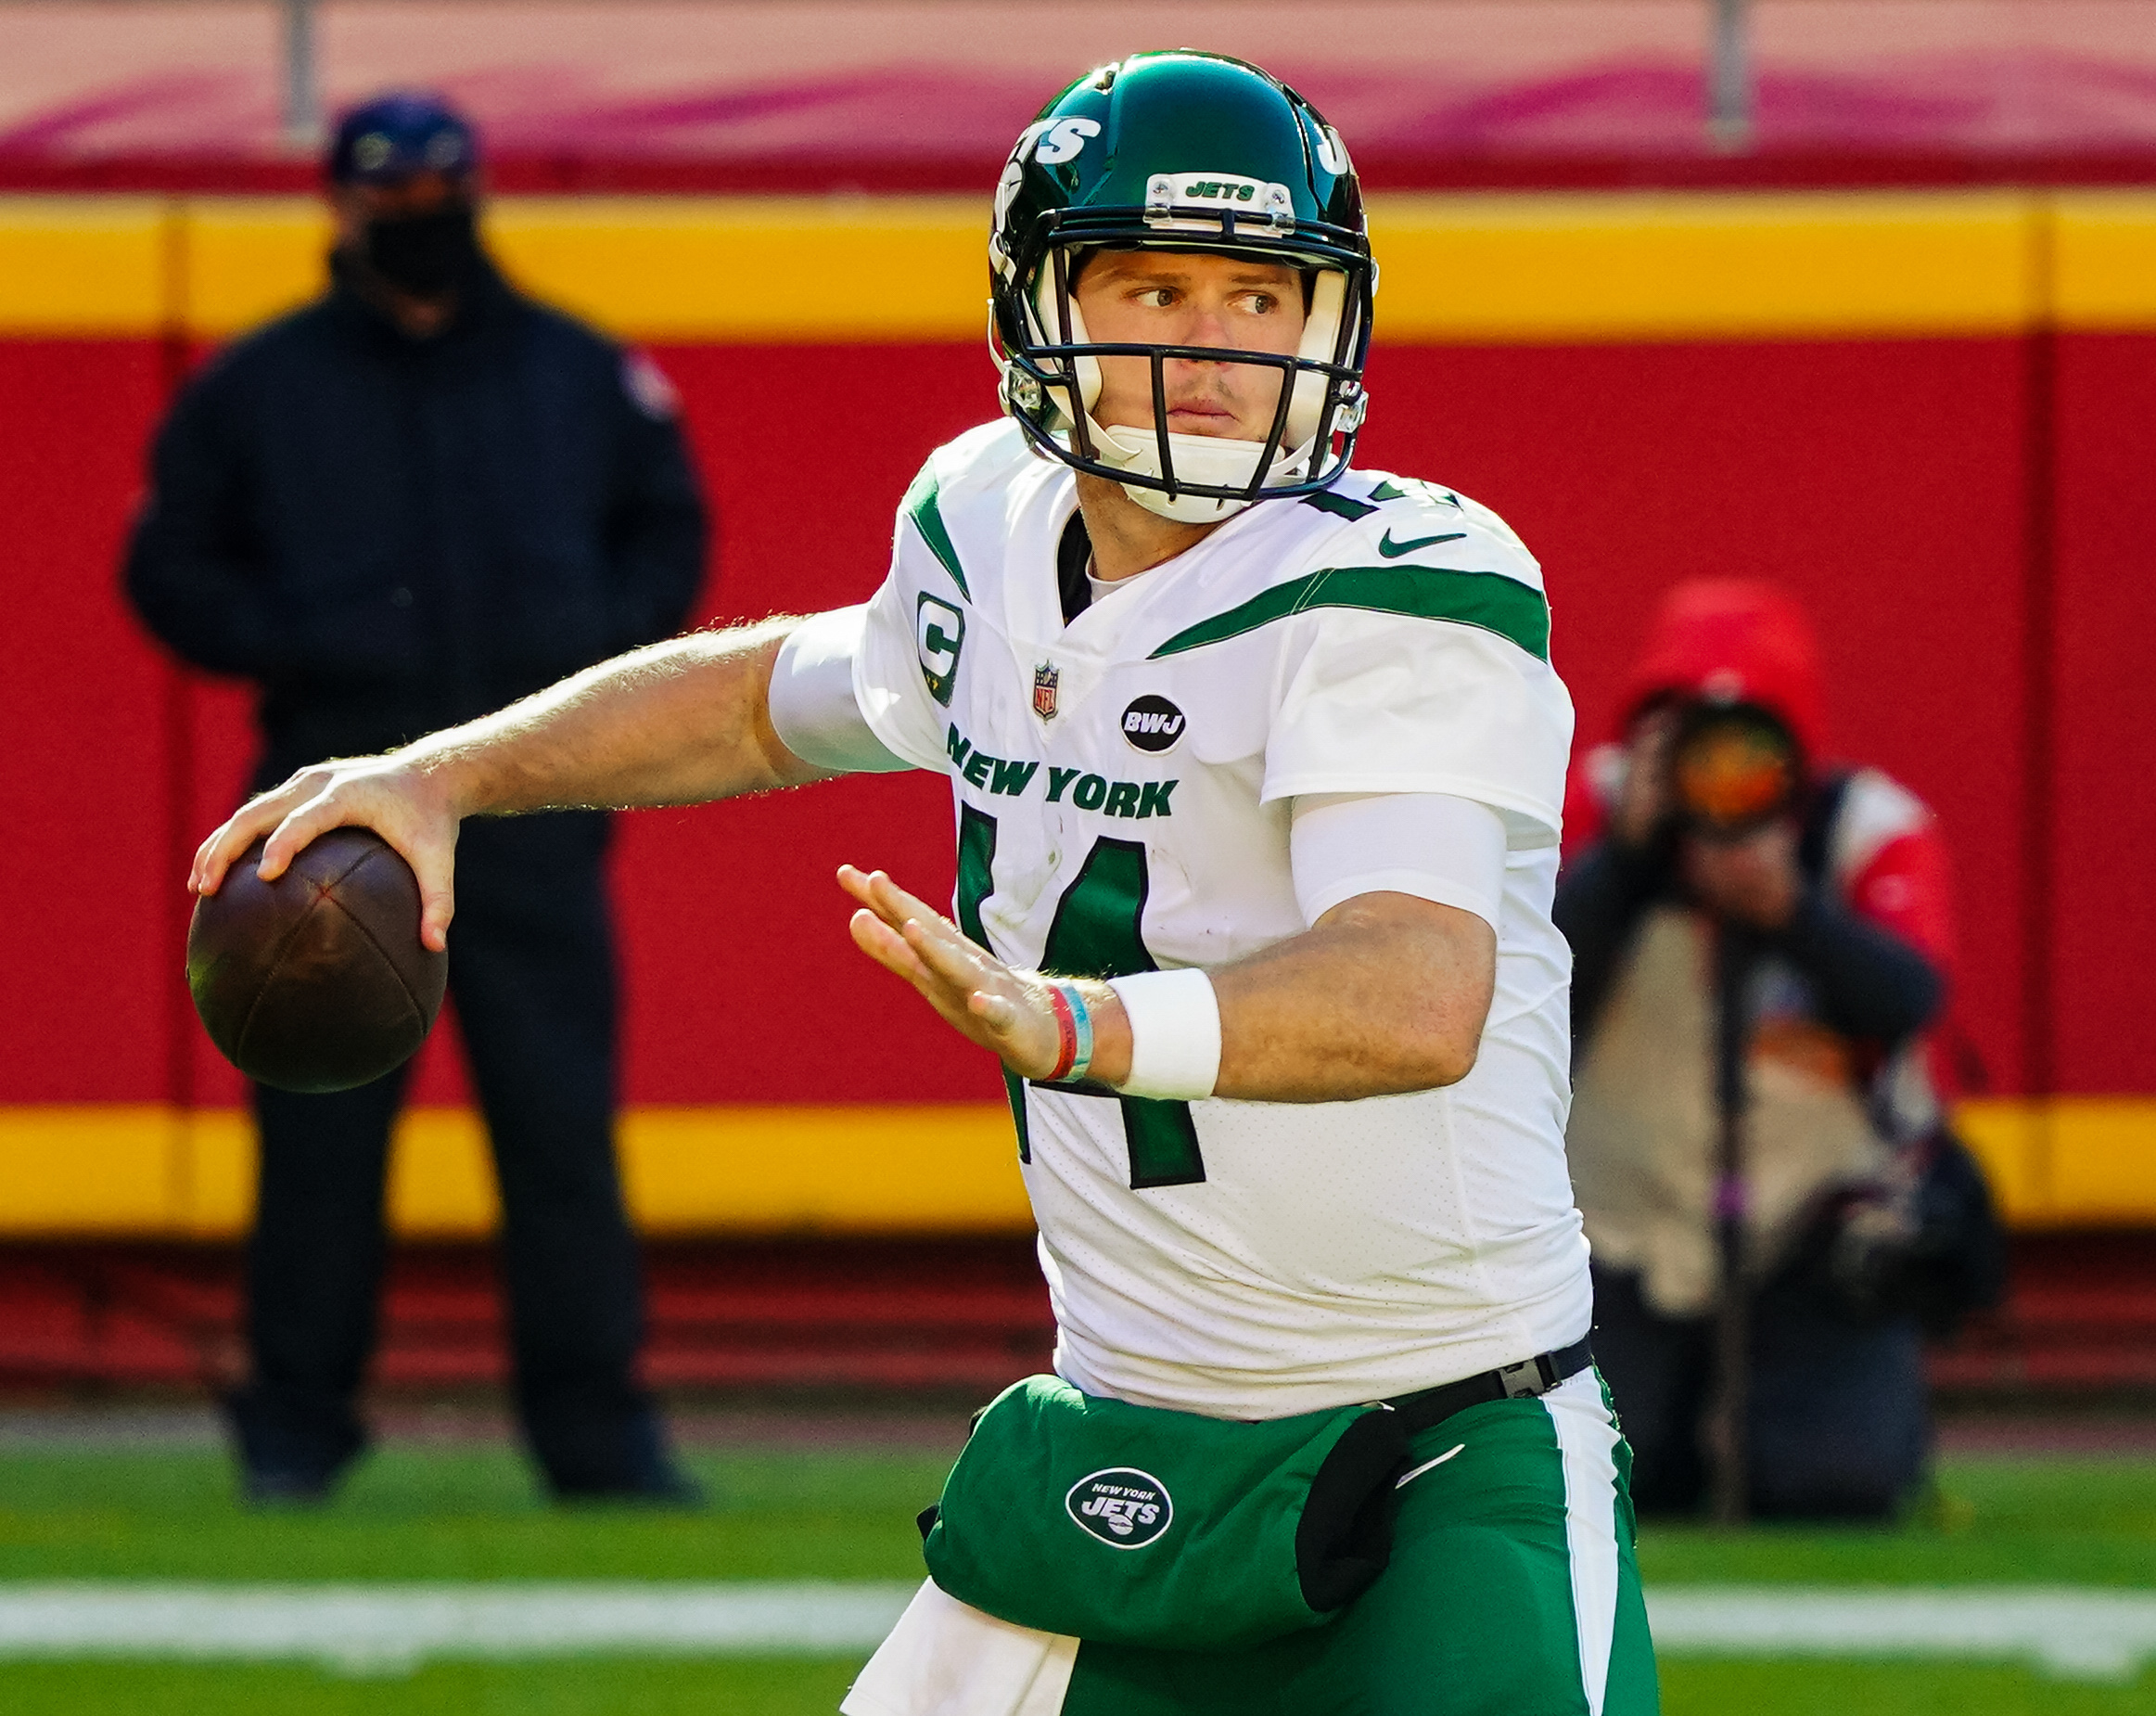 Jets unlikely to get solid return for Sam Darnold in potential trade